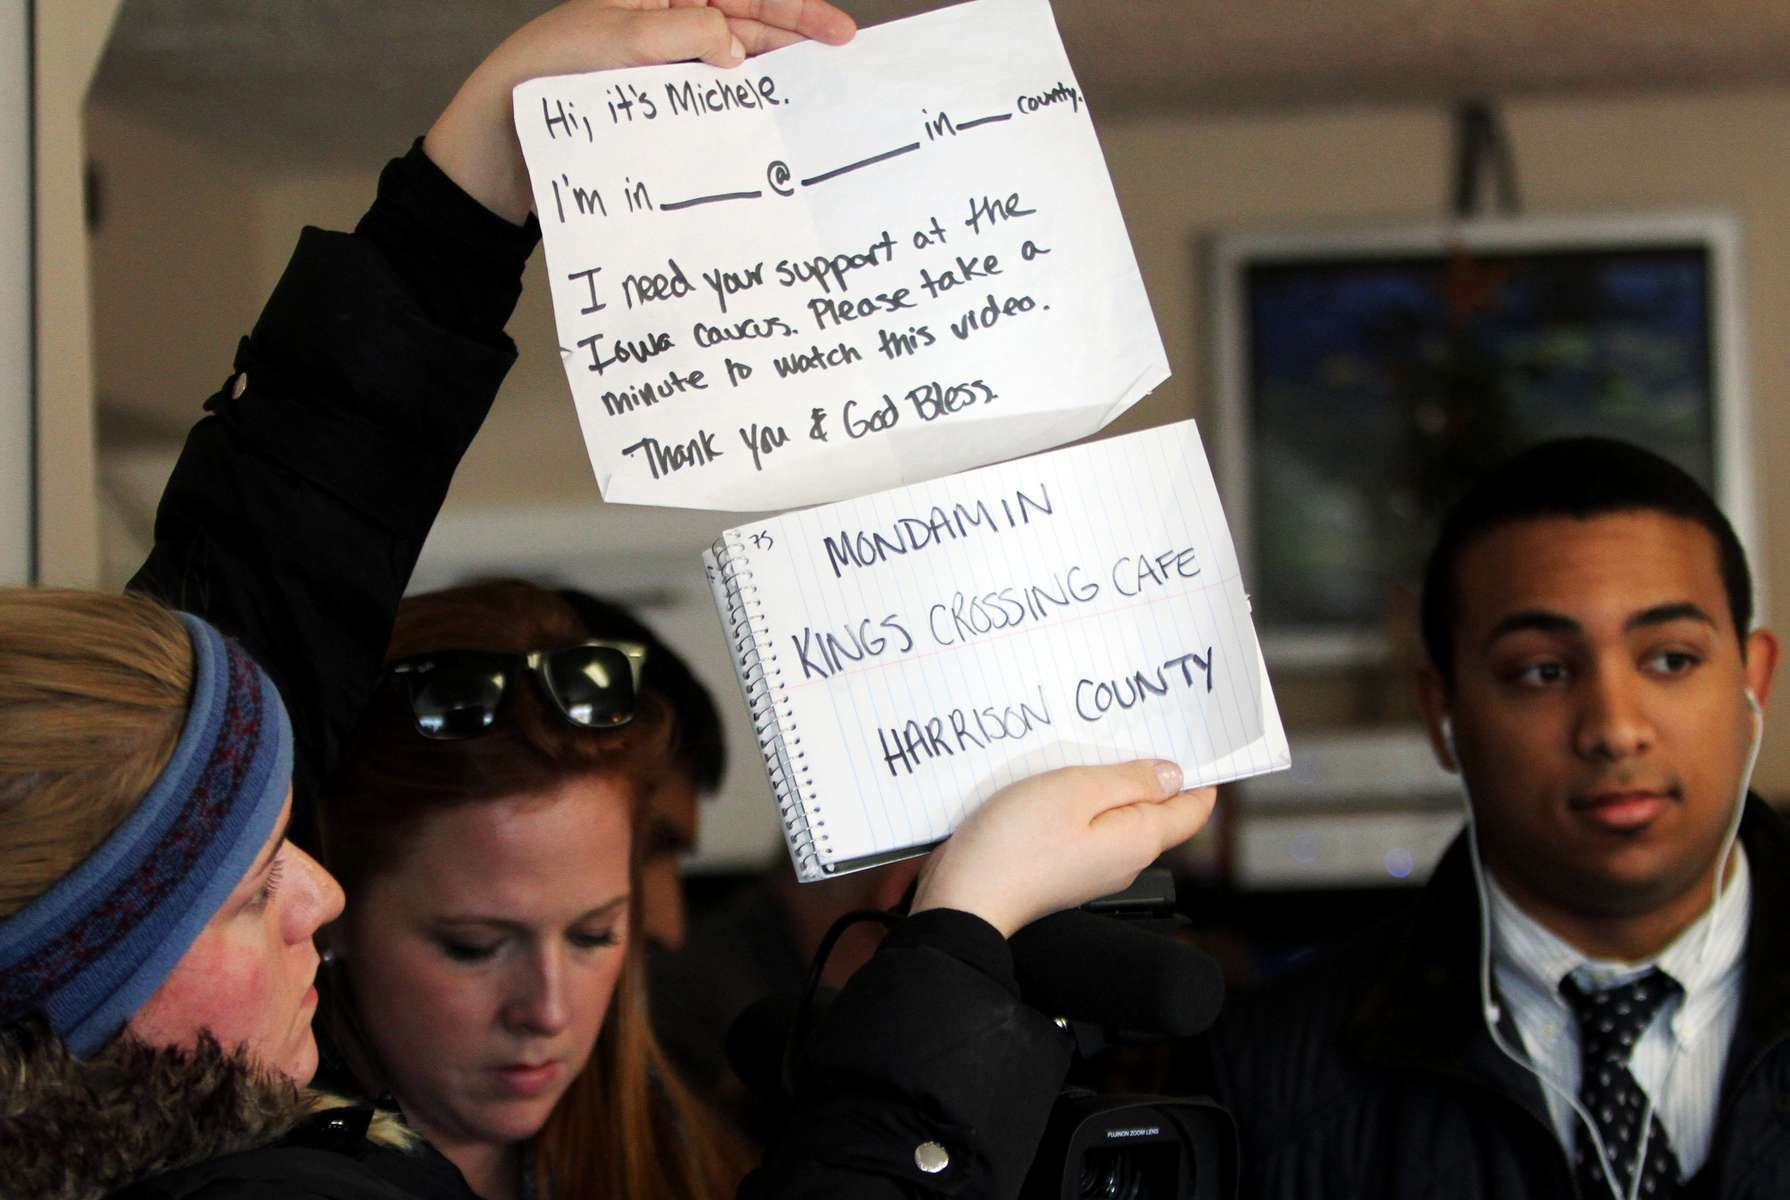 Michele Bachmann staff member Whitney Clark holds cue cards for Bachmann at King\'s Crossing Cafe in Mondamin, Iowa. Bachmann\'s campaign is producing short videos from all of the stops during her bus tour.